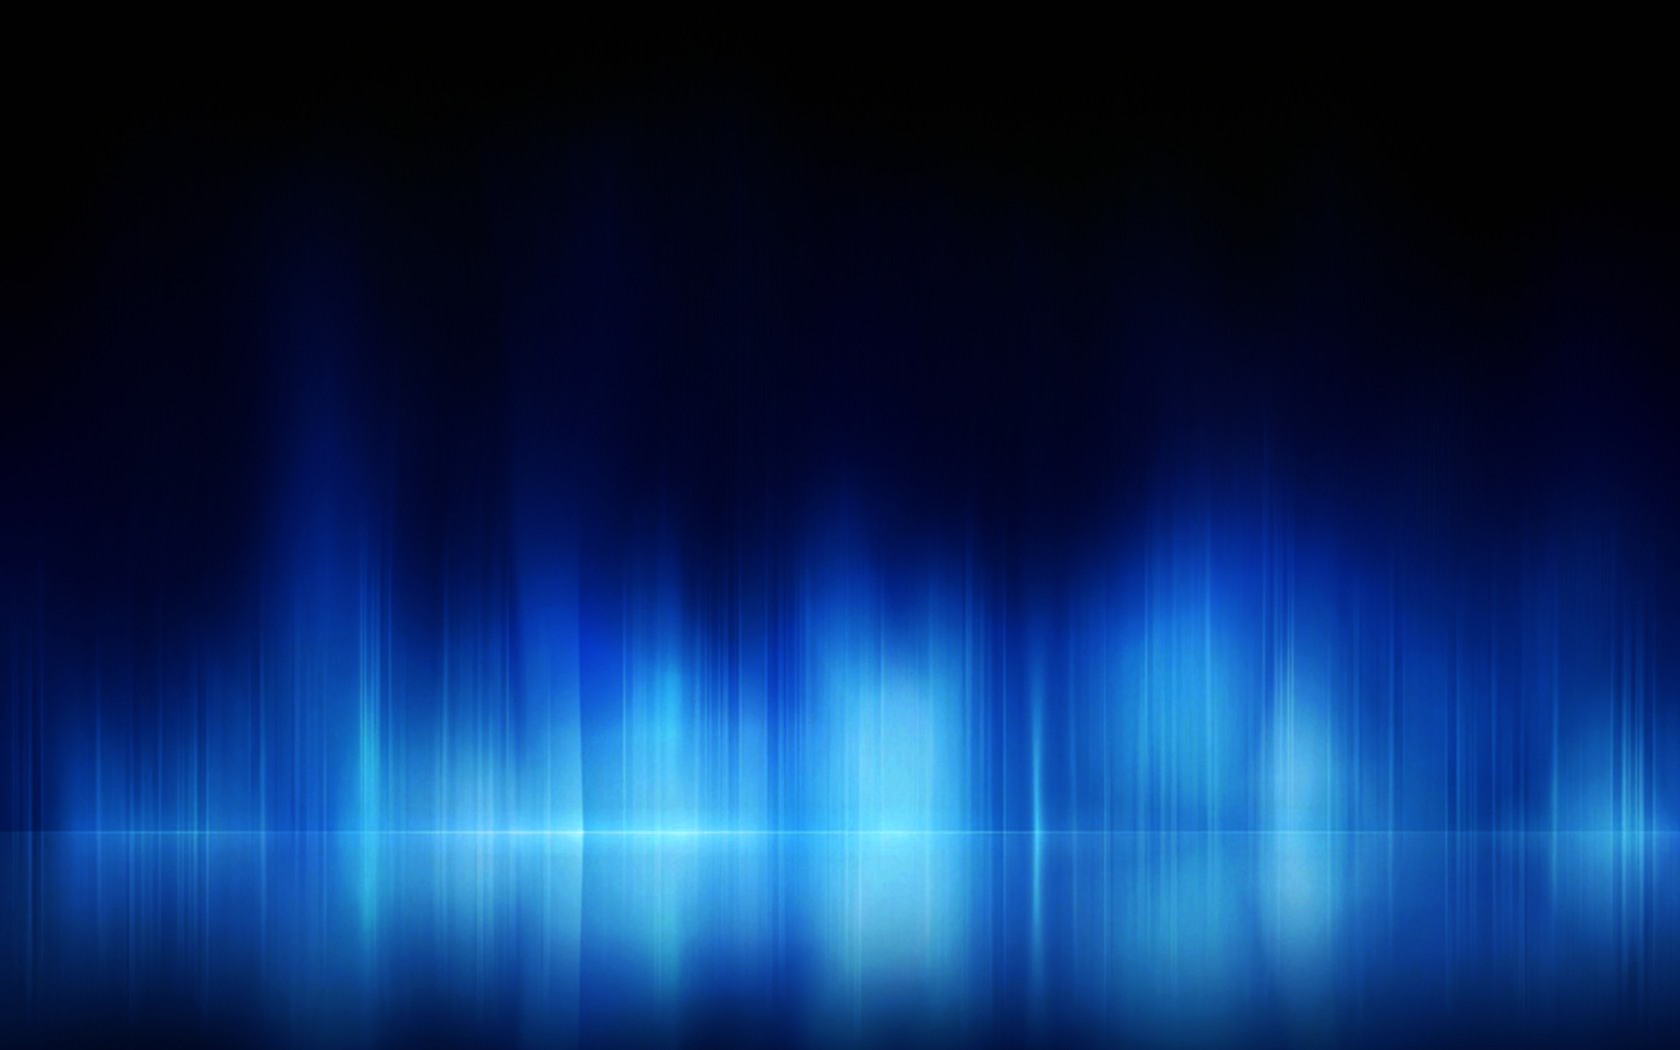 Blue Abstract Wallpaper Download HD Wallpapers 1680x1050